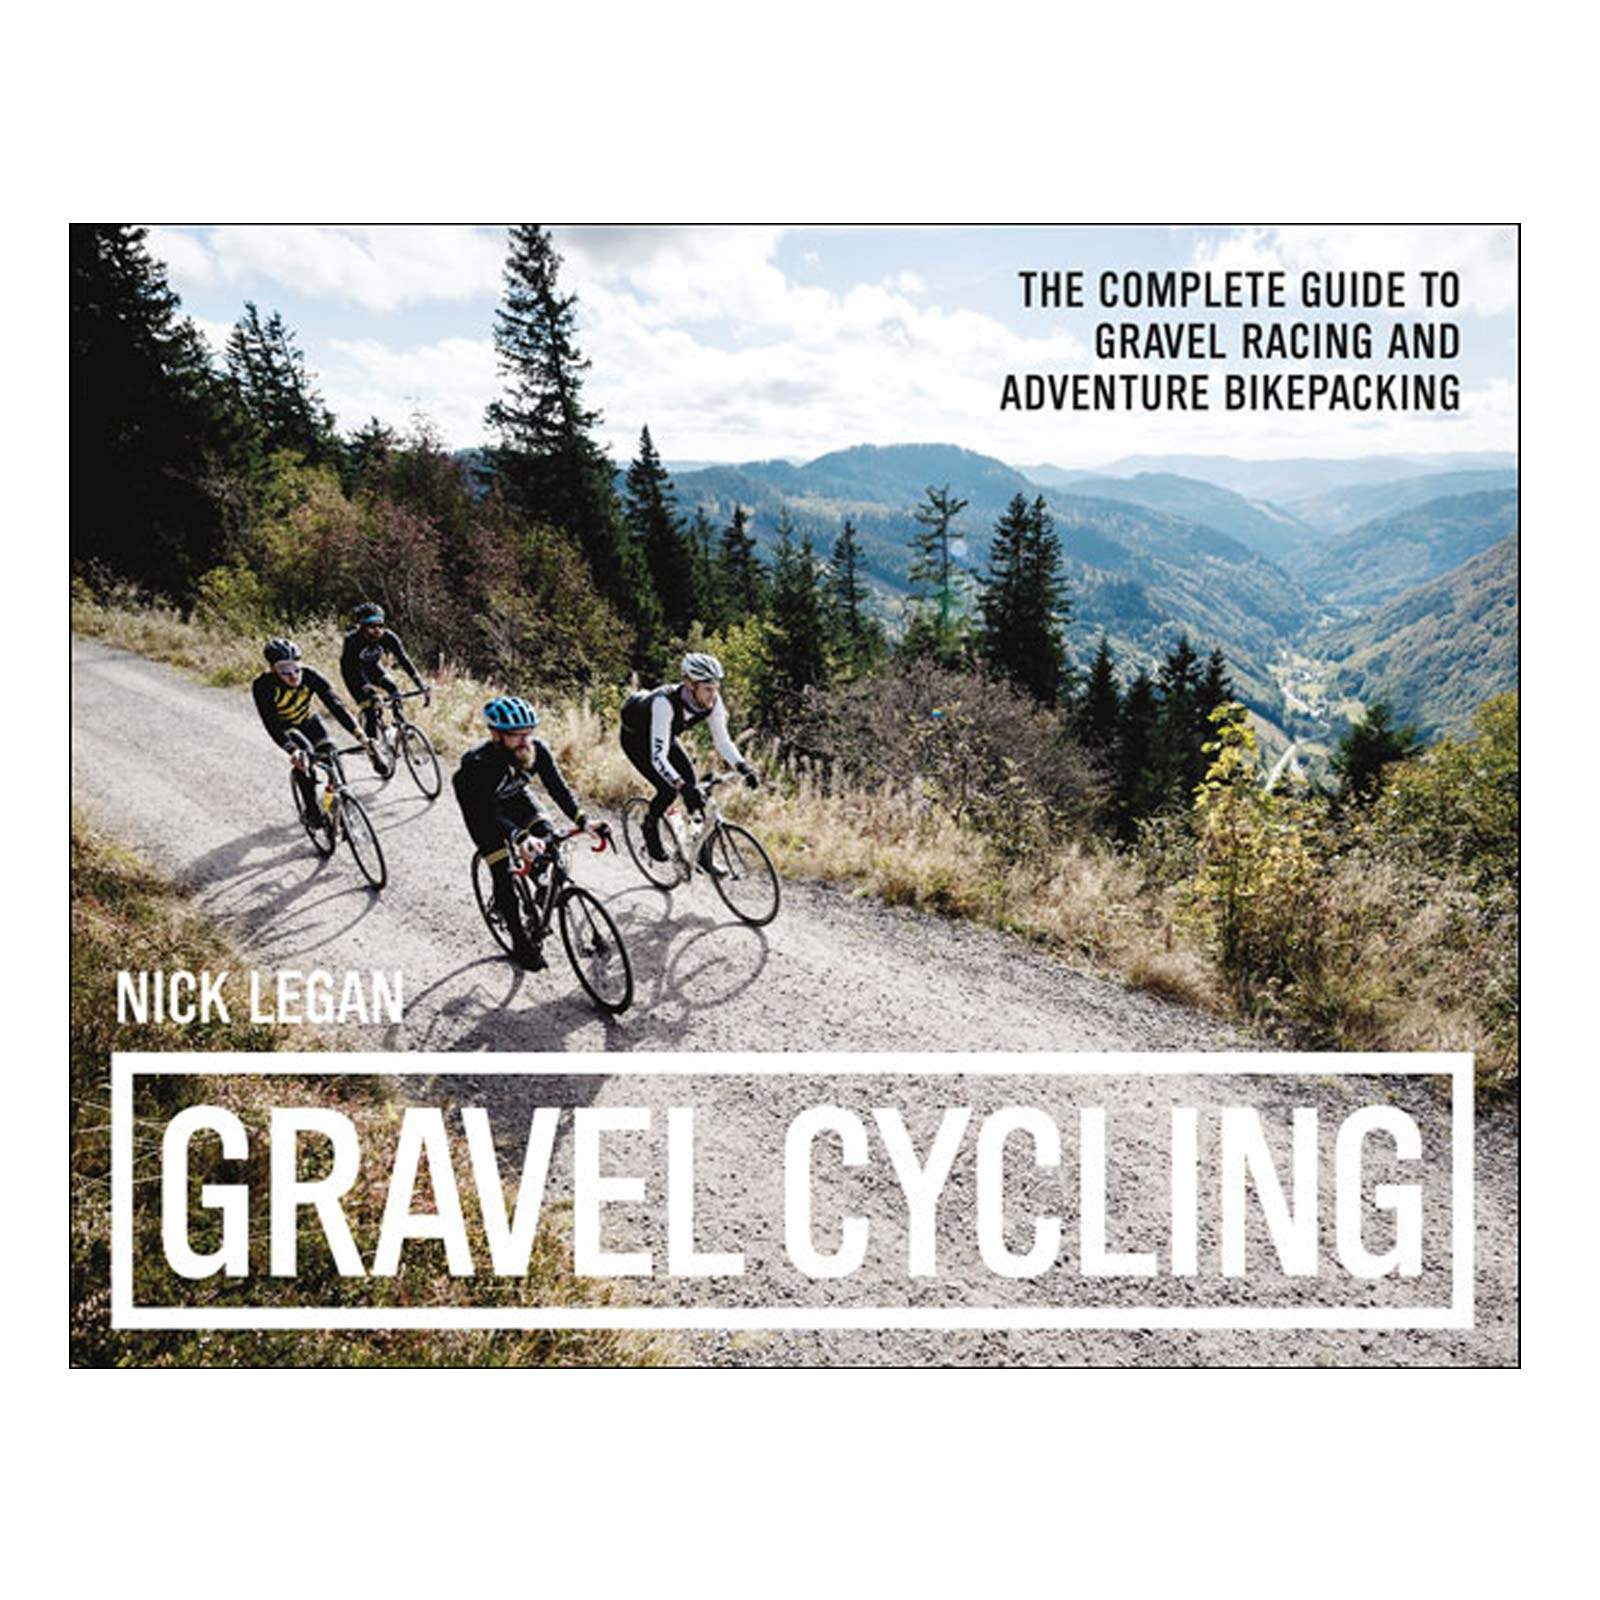 Gravel Cycling by Nick Legan - A Complete Guide to Gravel Racing and Bikepacking